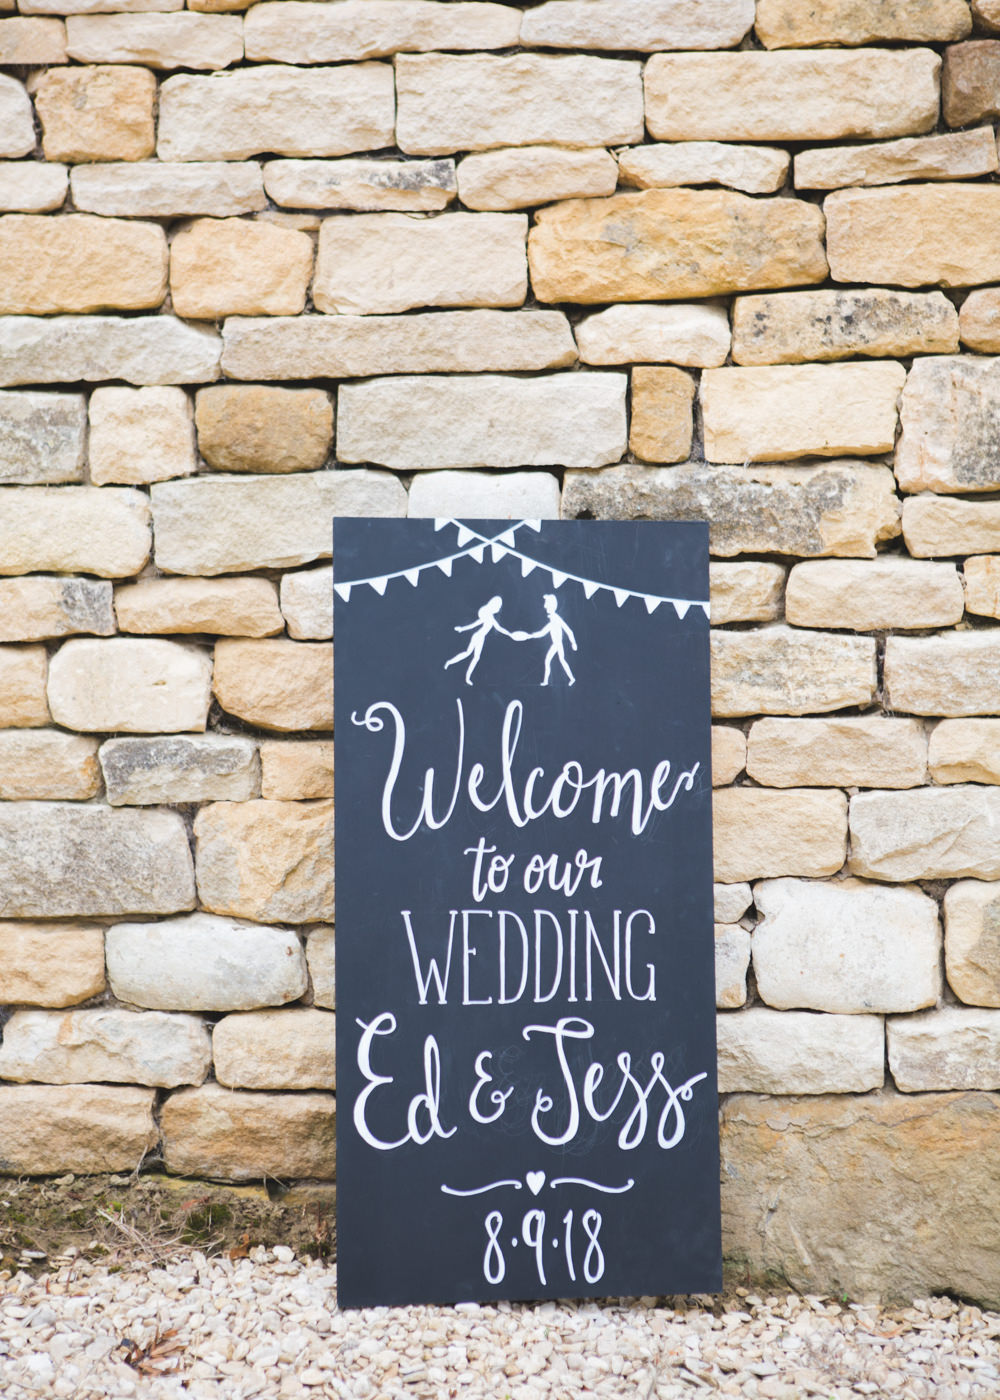 Black Board Chalk Sign Signage Signs Welcome Airbnb Wedding Pickavance Weddings